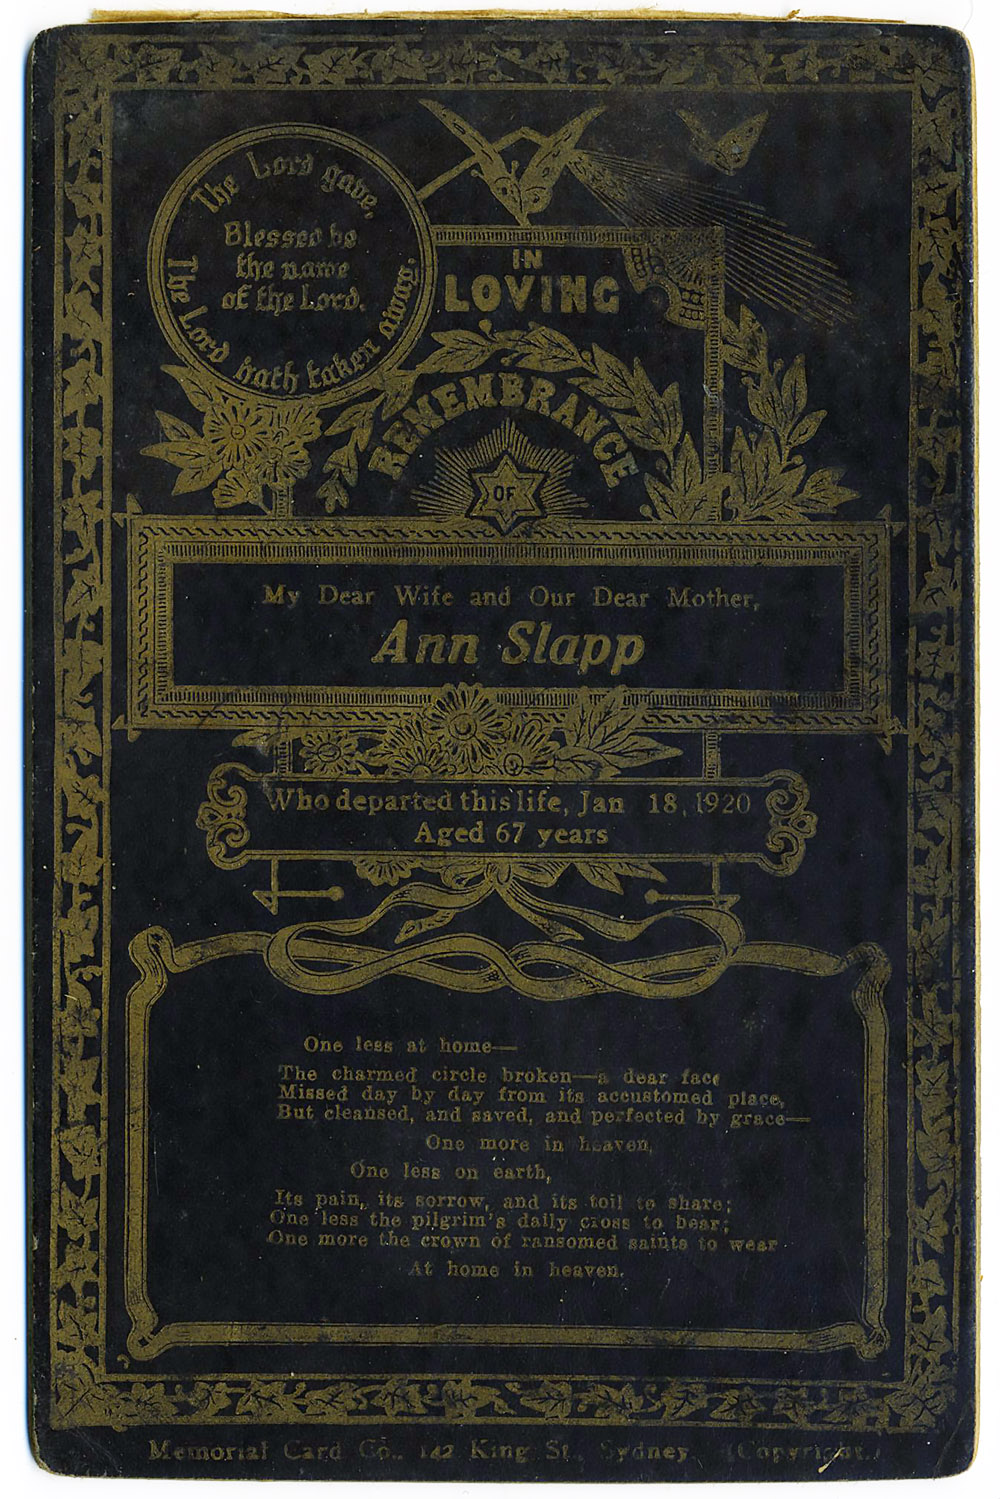 Ann Slapp Memorial Card